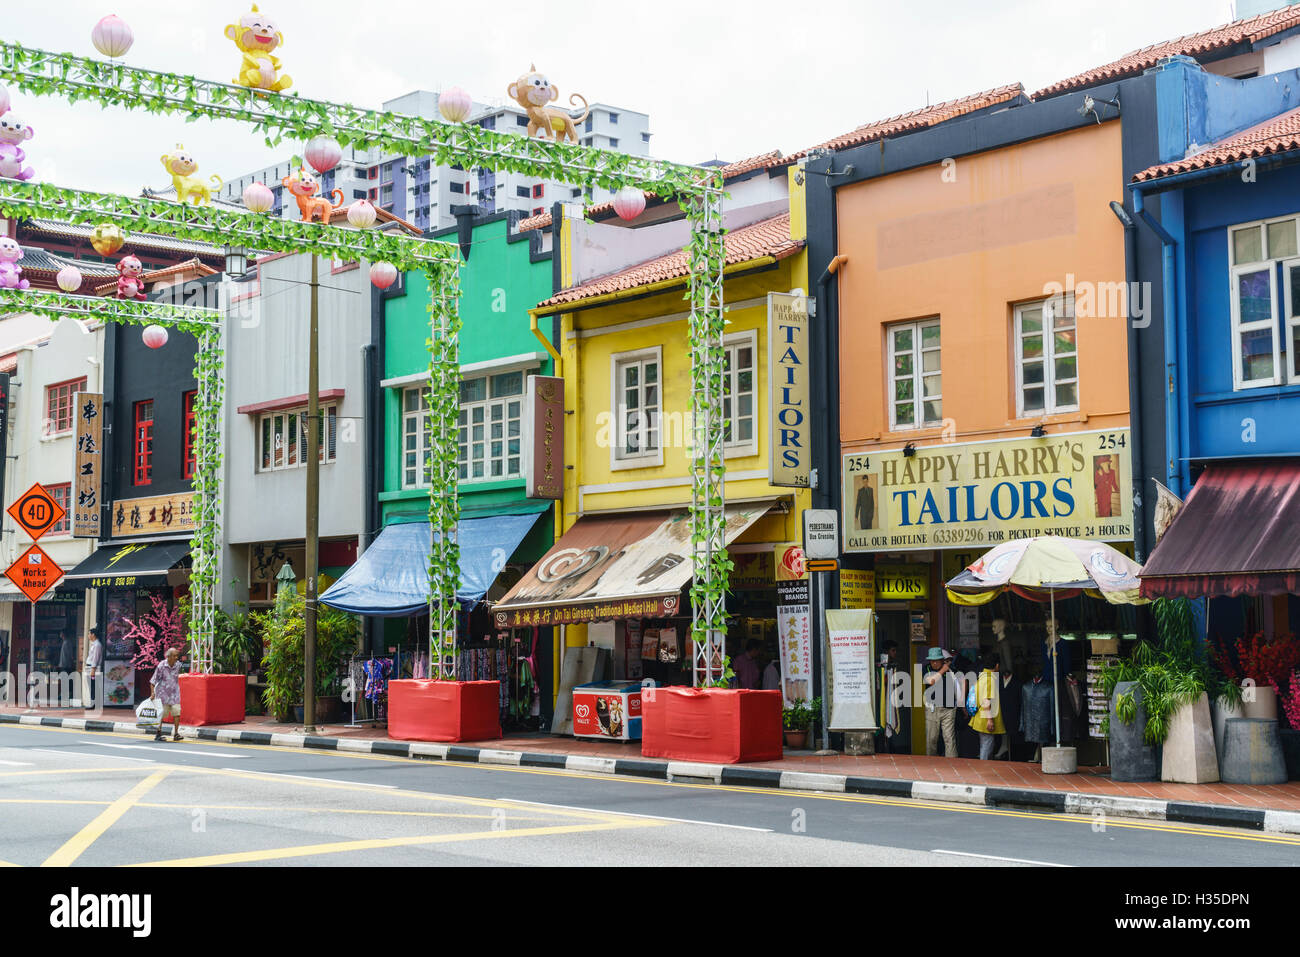 Colourful shophouses in South Bridge Road, Chinatown, Singapore - Stock Image